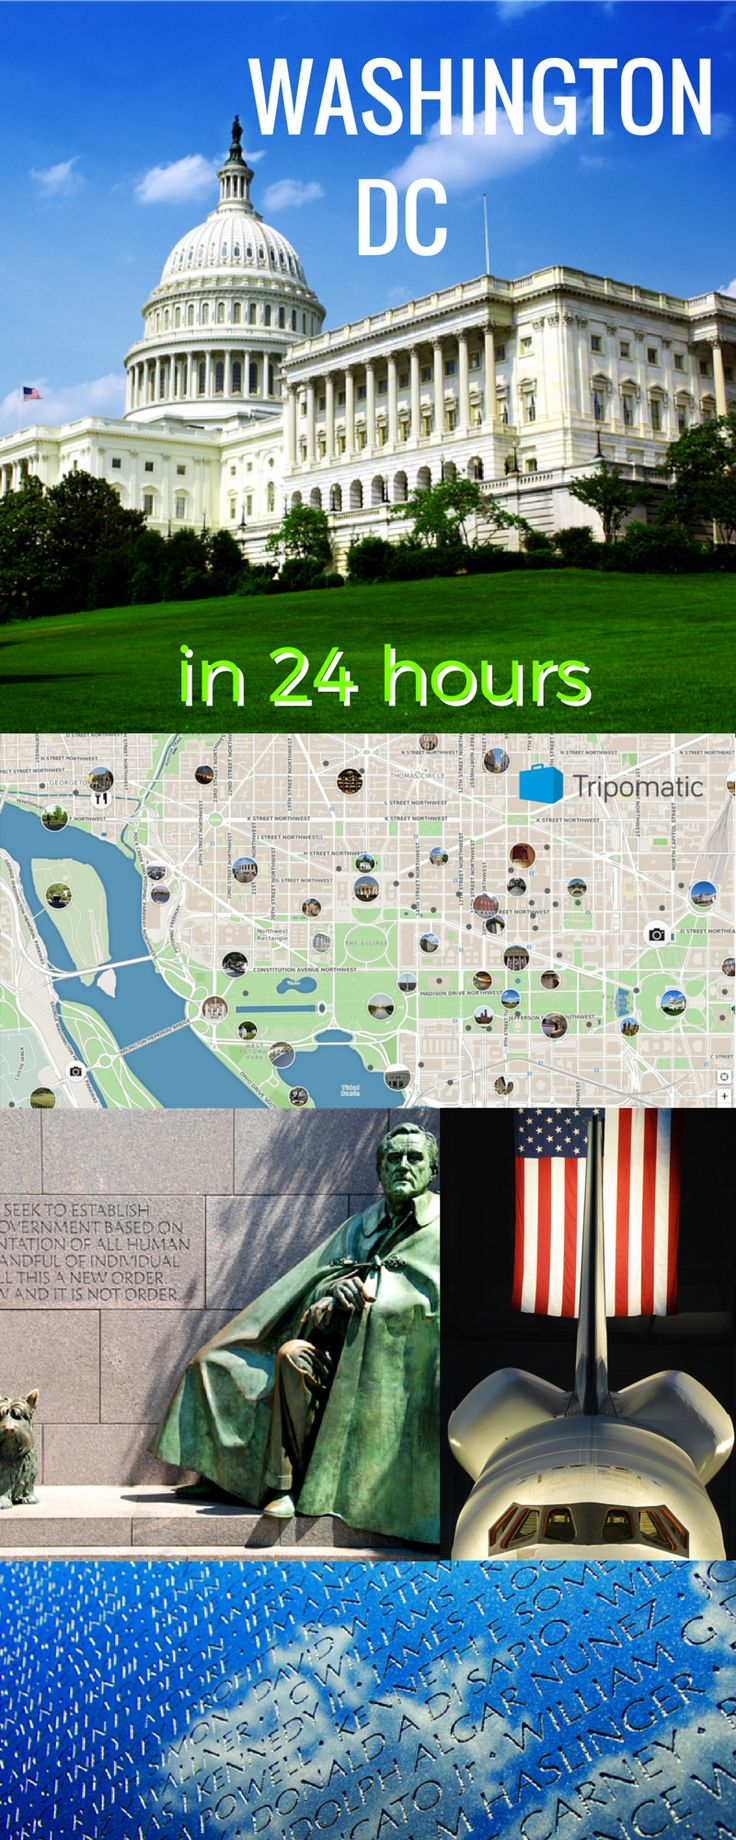 Washington DC Travel. What to do and what to see in this unique city?  Spend full day in #Washington DC  and don't miss out any of its highlights thanks to #Tripomatic suggested travel itinerary for #24hours in Washington DC. Got inspired along the way? Change a plan and make tailor made itinerary for yourself, as it fits you the most. http://www.tripomatic.com/trip-planner/#/?destination=city:366